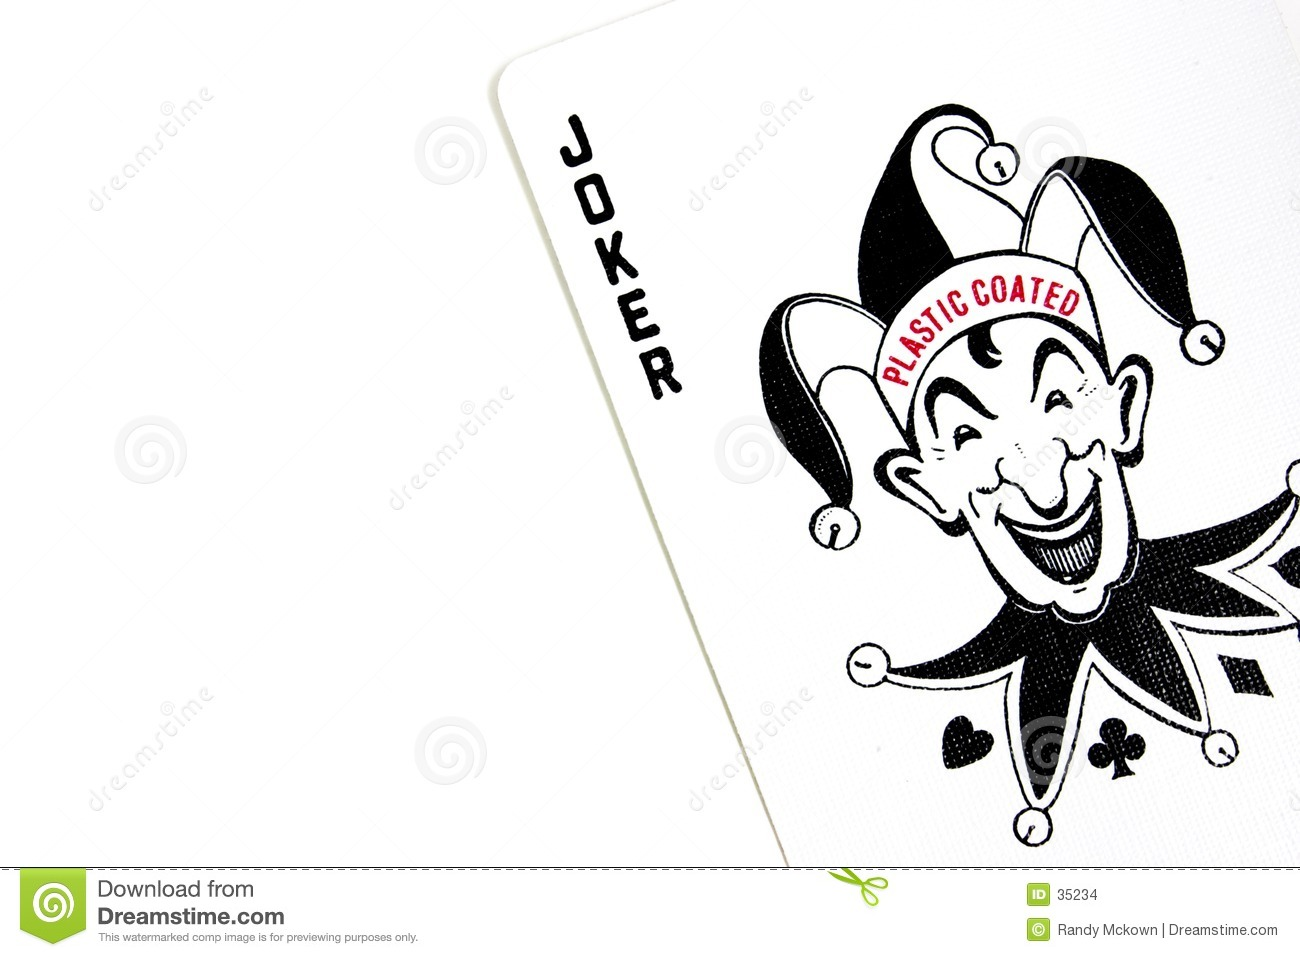 The Joker Playing Poker Cards Stock Images - Image: 35234